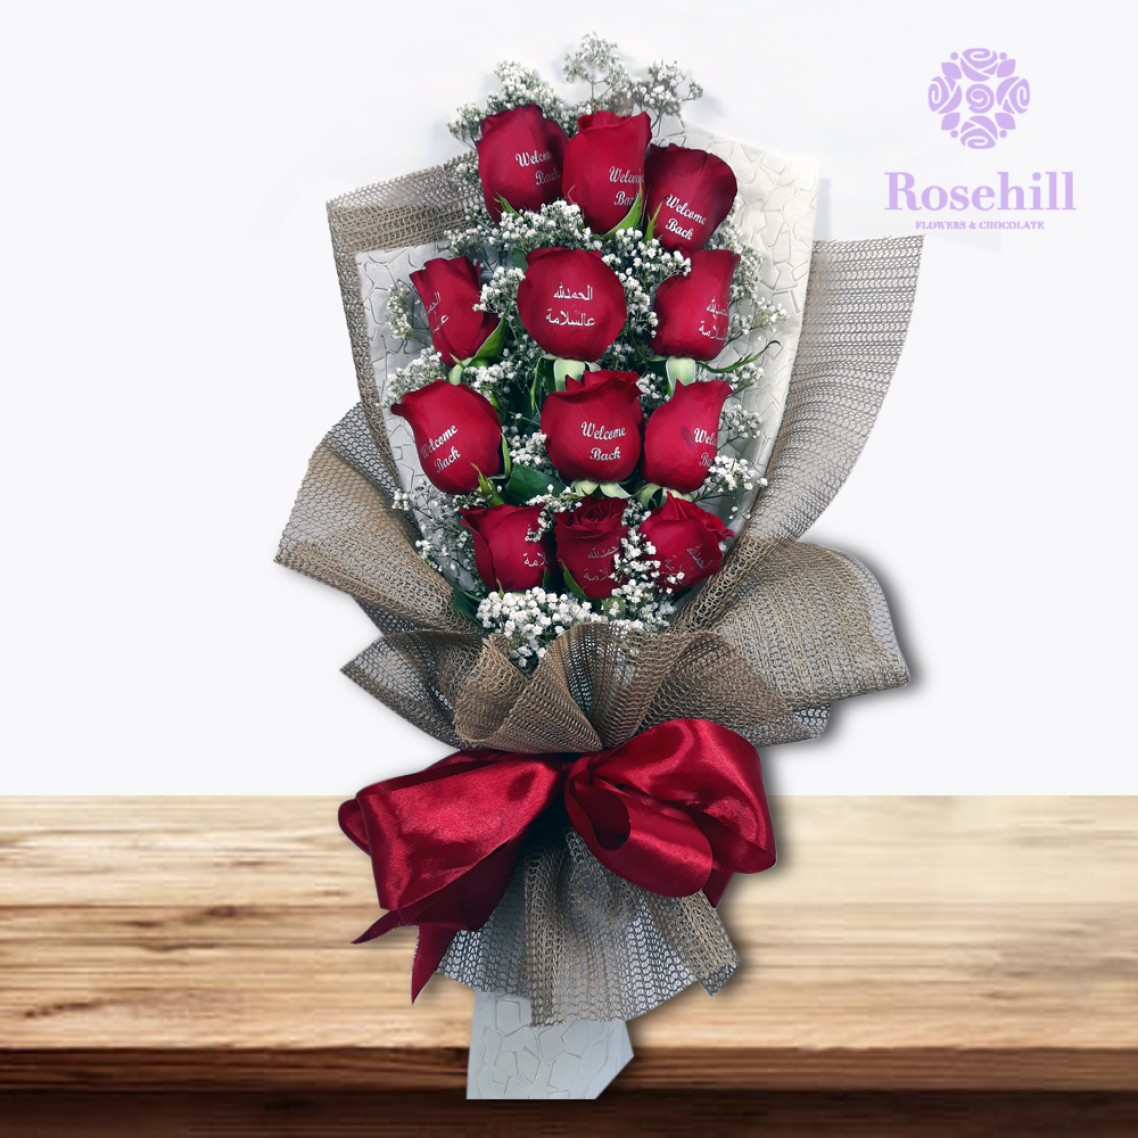 1524660670-h-250-Rosehill's Welcome Back  Bouquet with Baby's Breath- Red.jpg